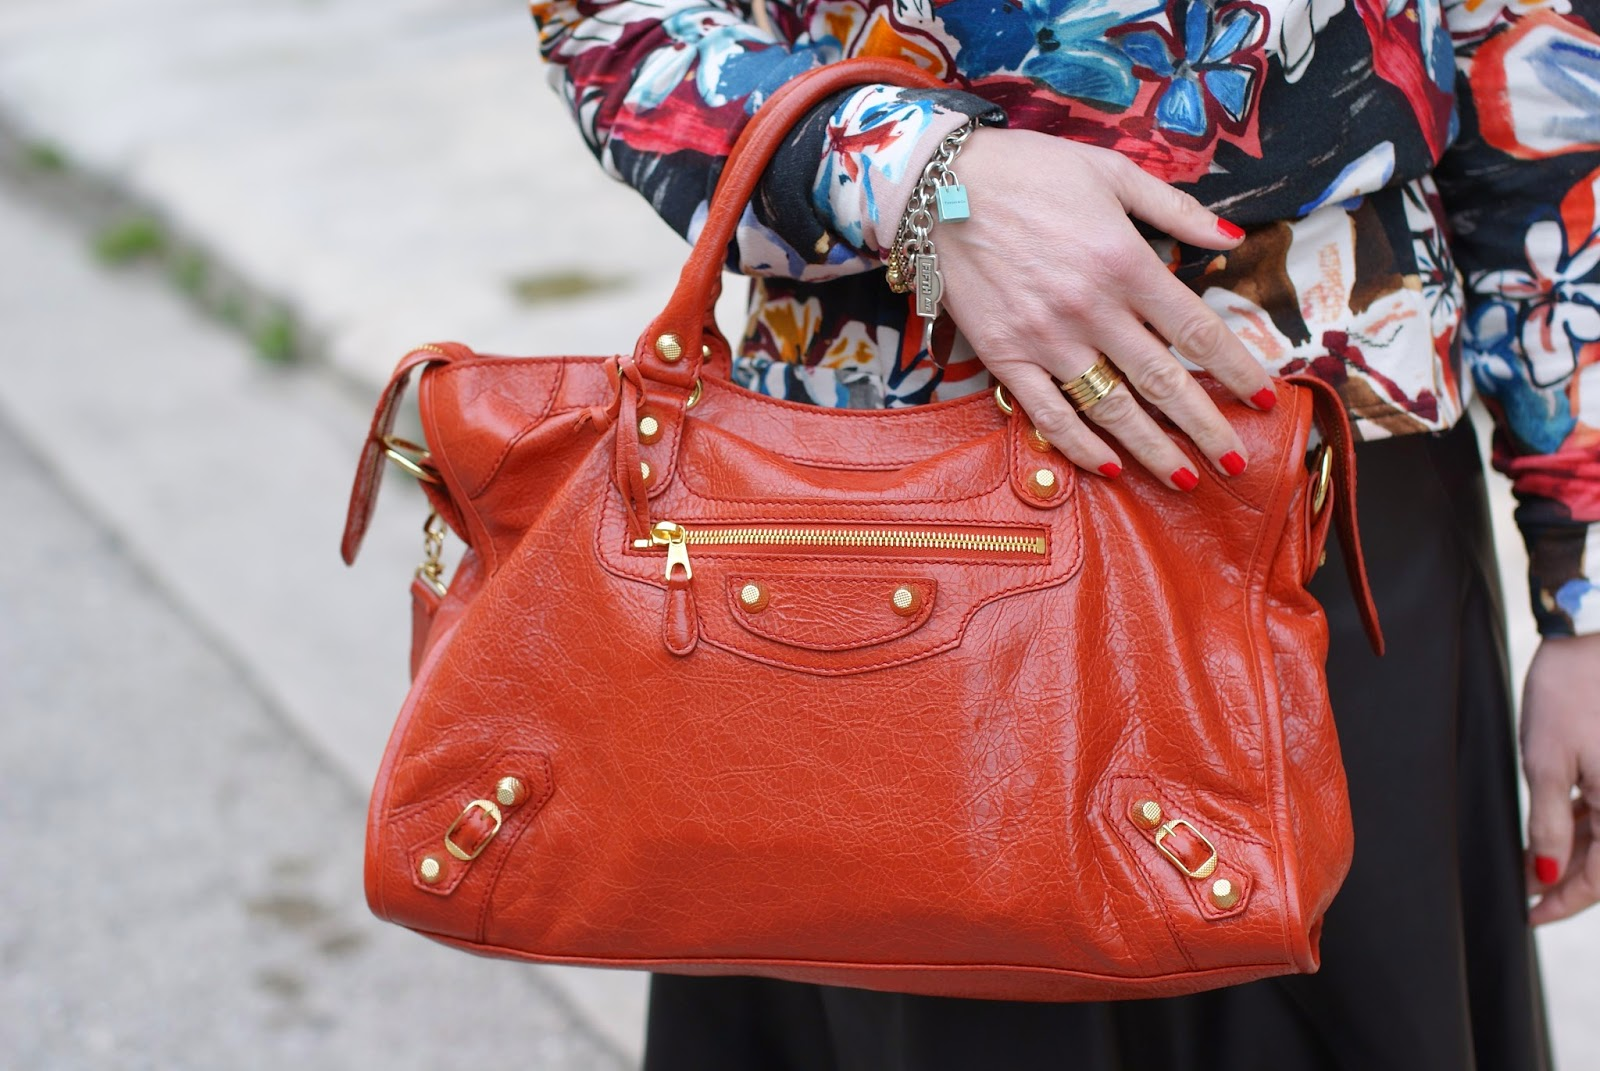 Balenciaga Bag in rouge ambre color on Fashion and Cookies fashion blog